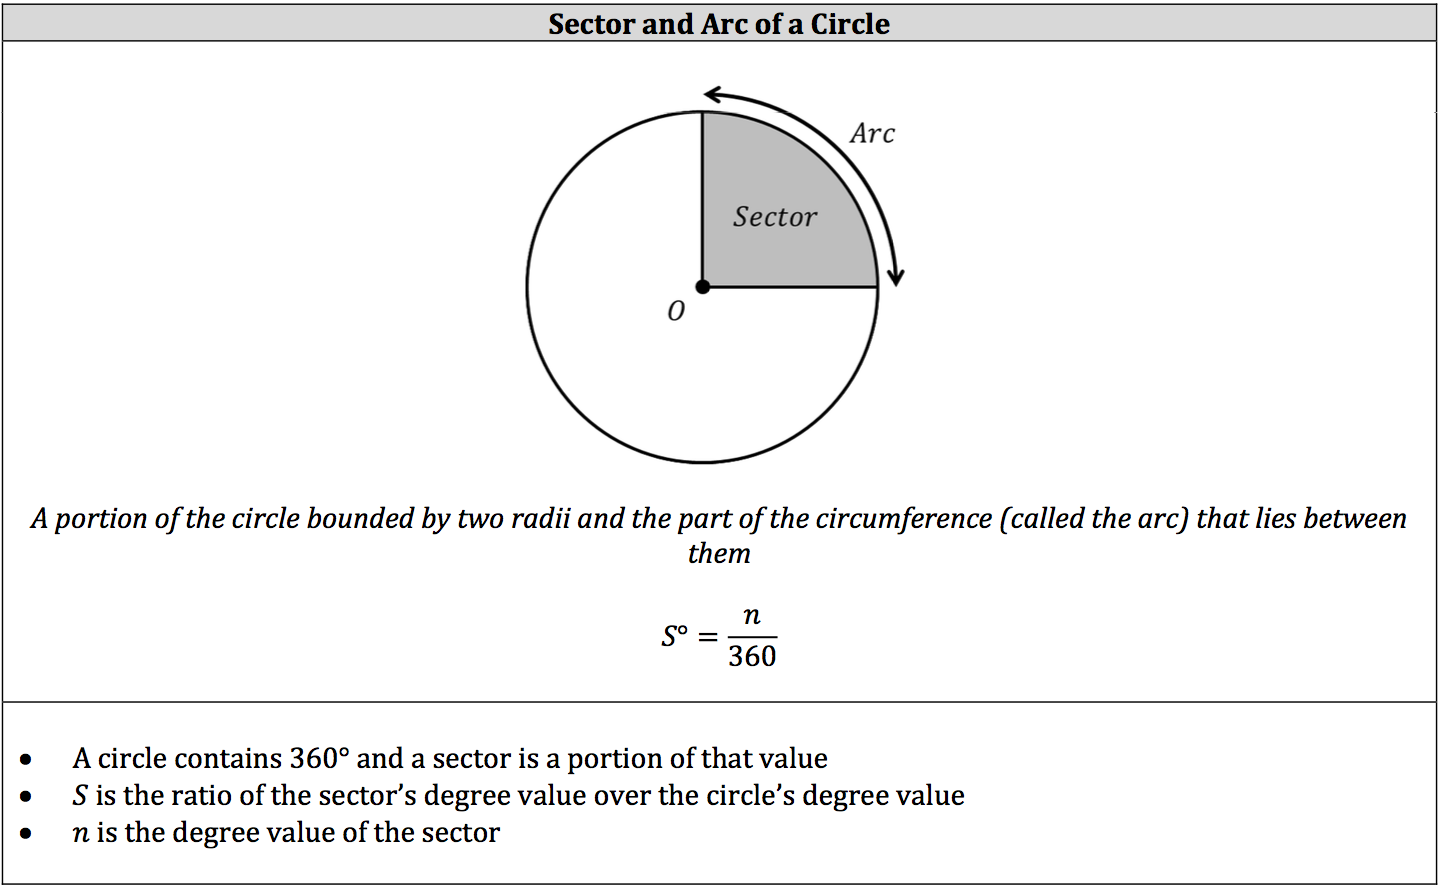 sector-and-arc-of-a-circle